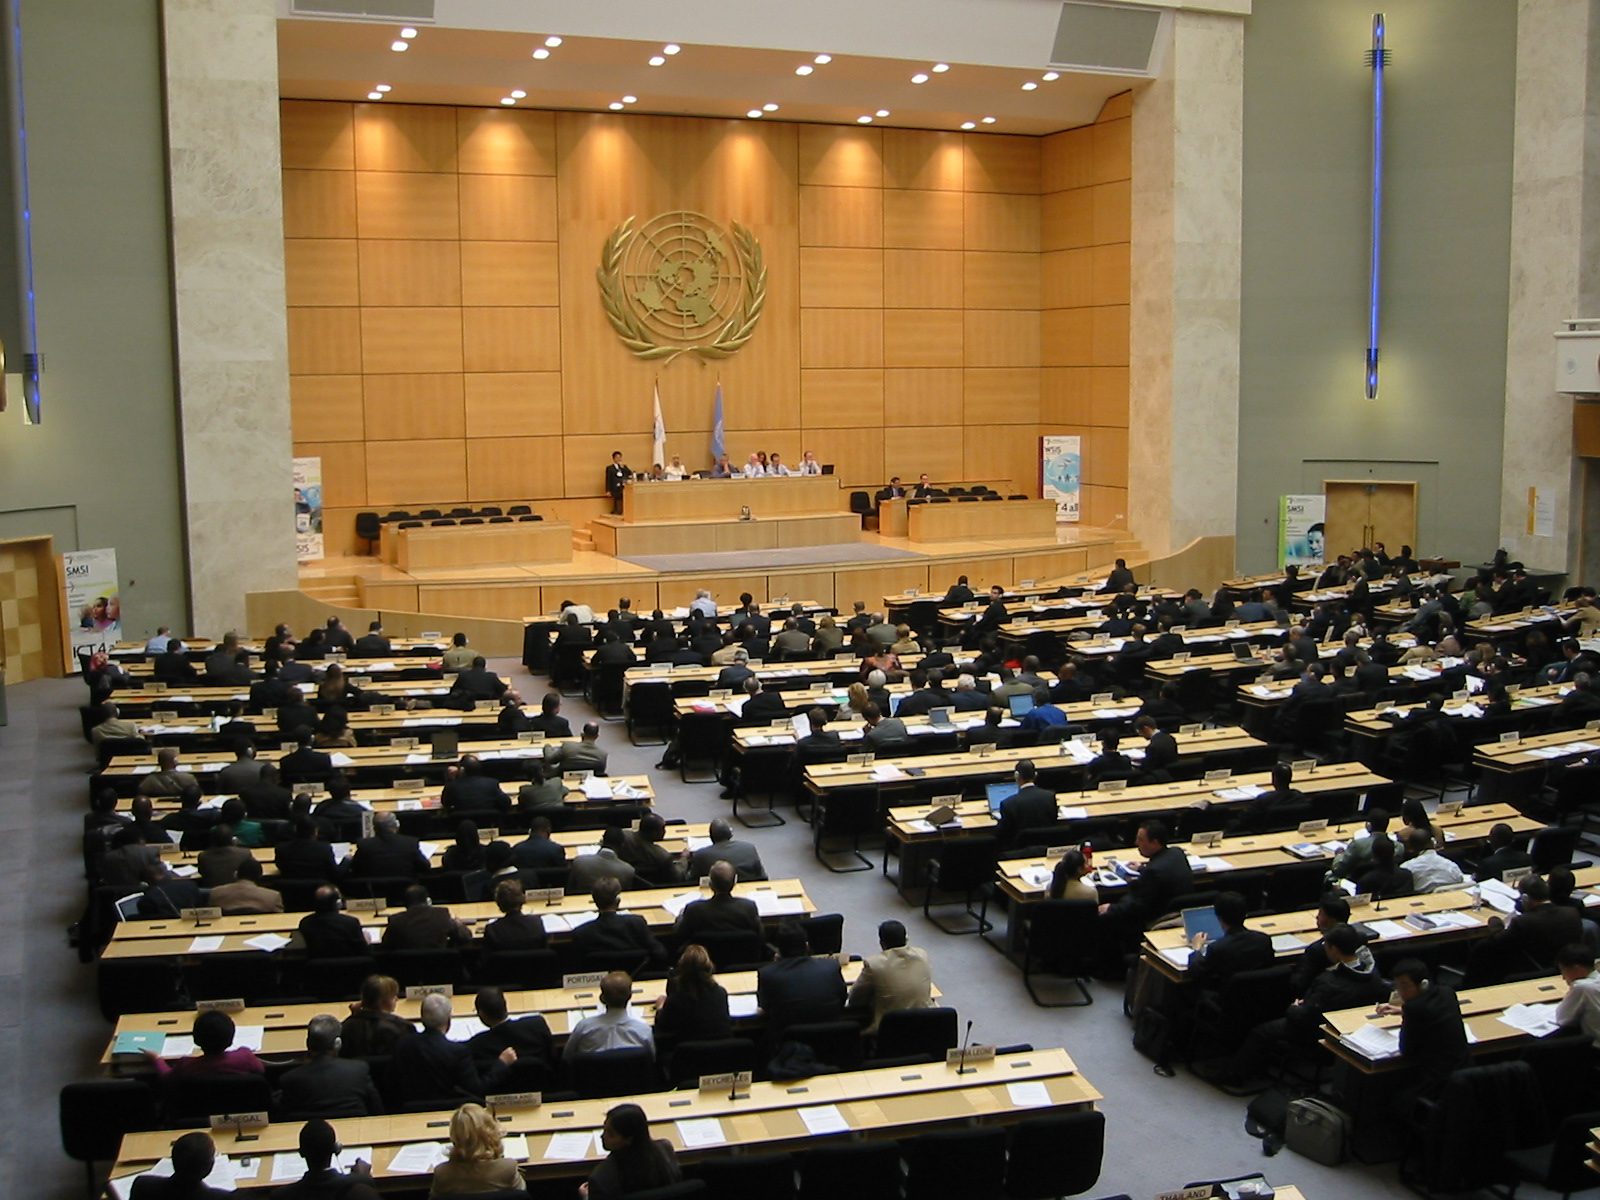 The Assembly Hall in the Palais des Nations building in Geneva is used for large or major meetings such as the World Health Assembly. Photo taken on February 24, 2005, during the second preliminary session of the World Summit Information Society, plenary meeting